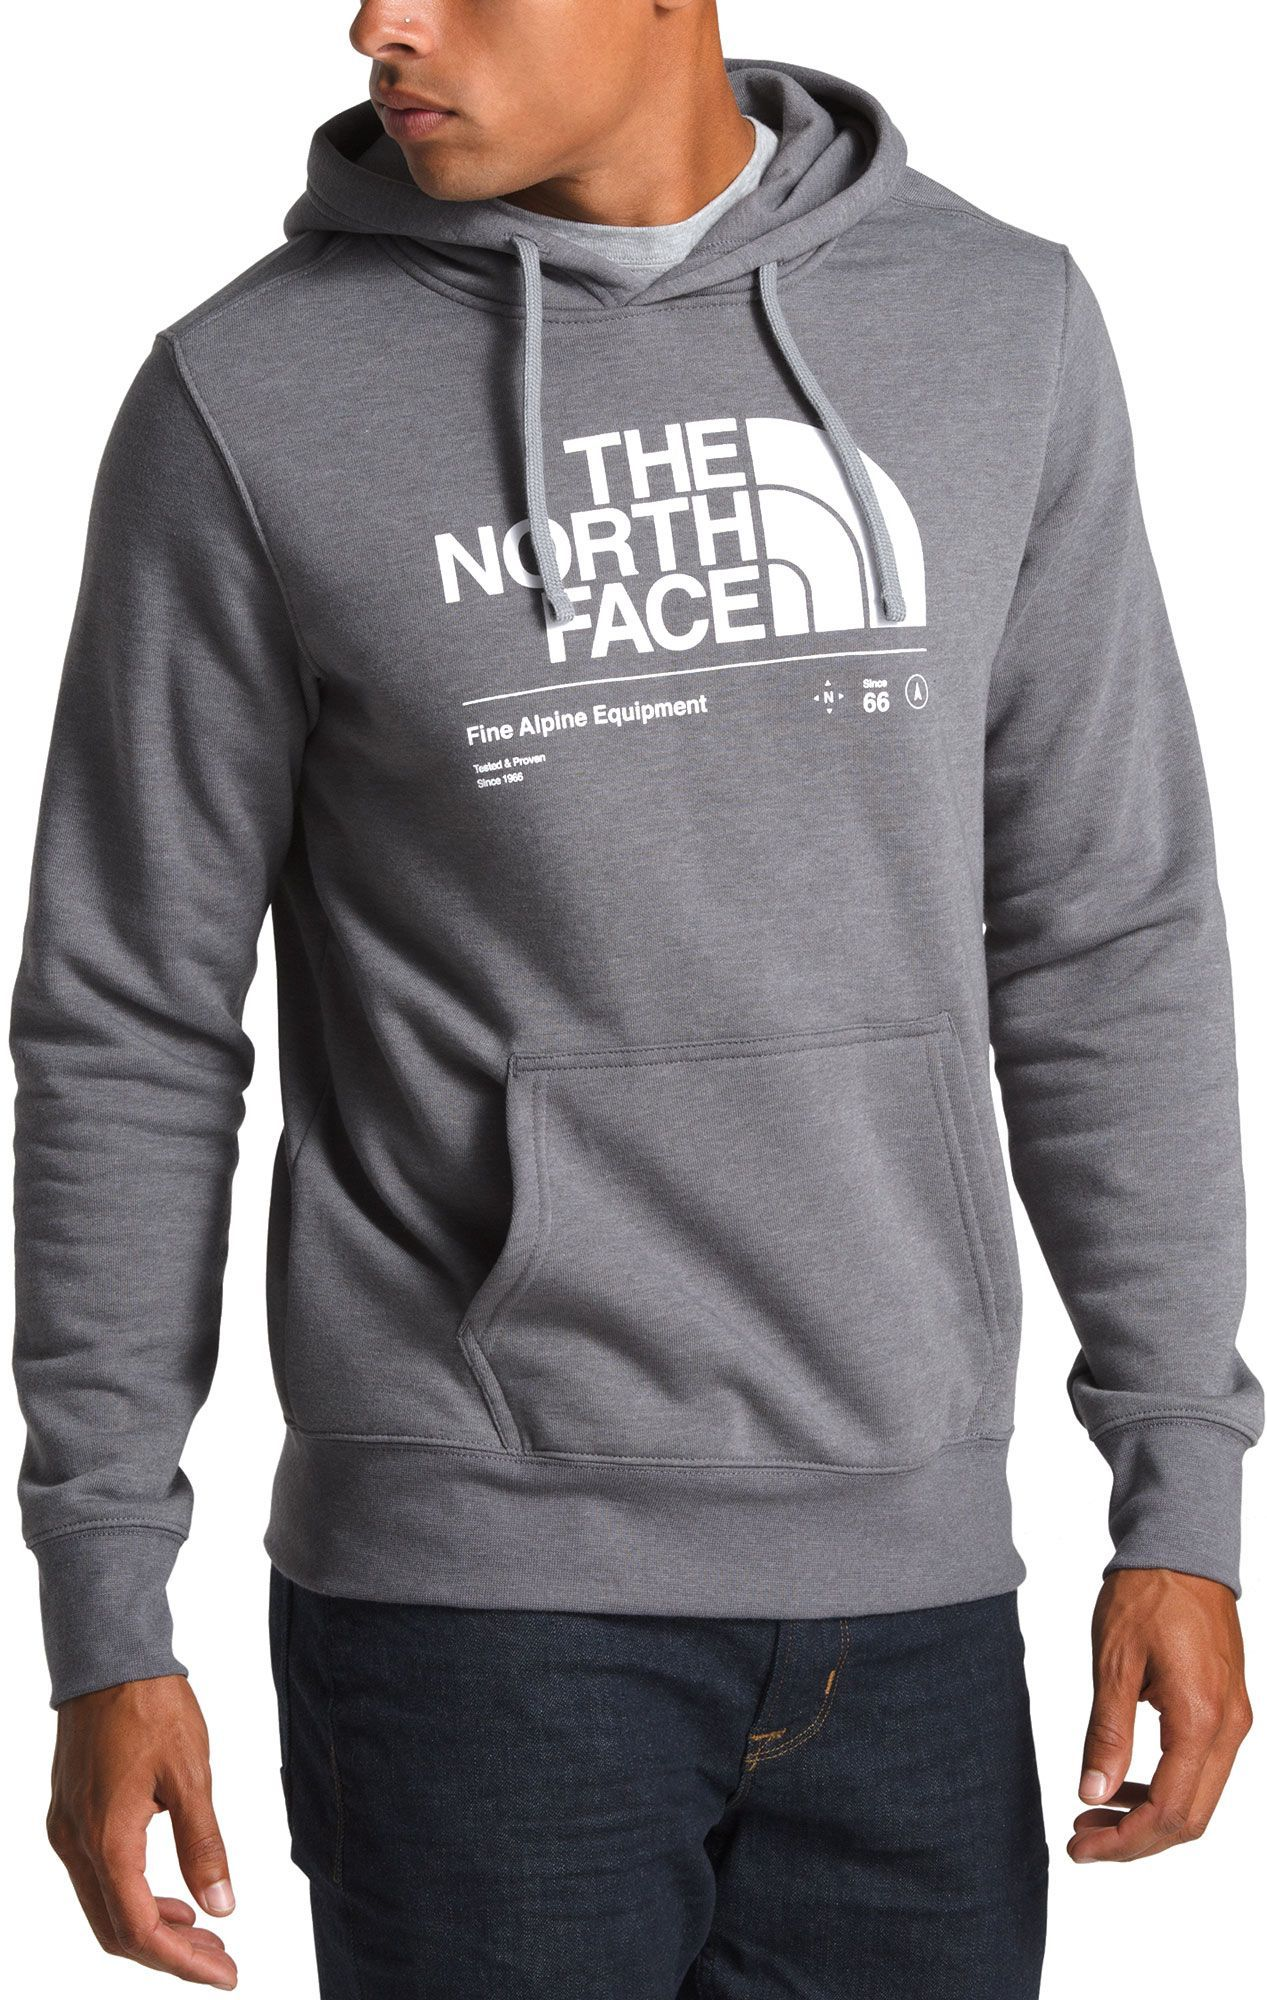 6fcea6d4b The North Face Men's Half Dome Explore Hoodie, Size: Small, Blue in ...